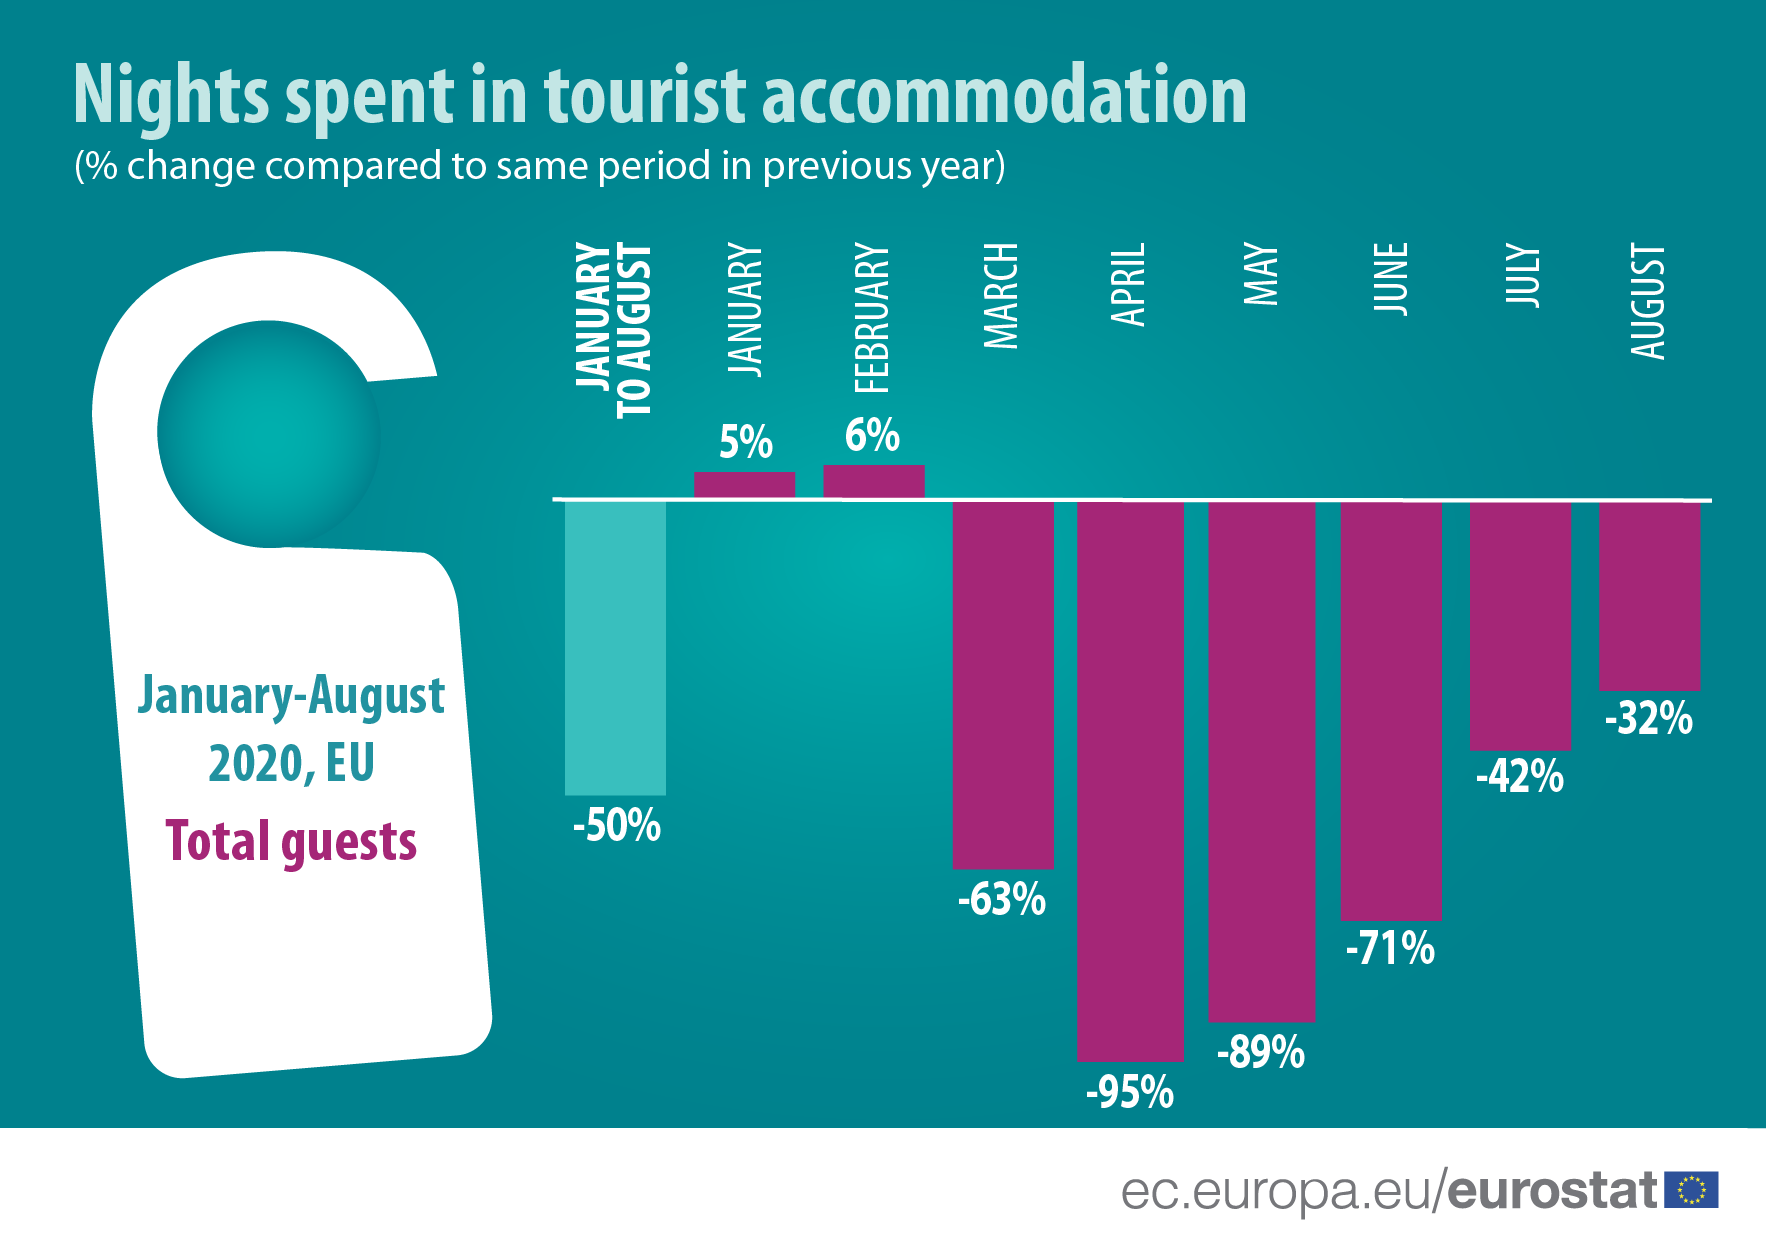 Infographic: Nights spent in tourist accommodation, 2020